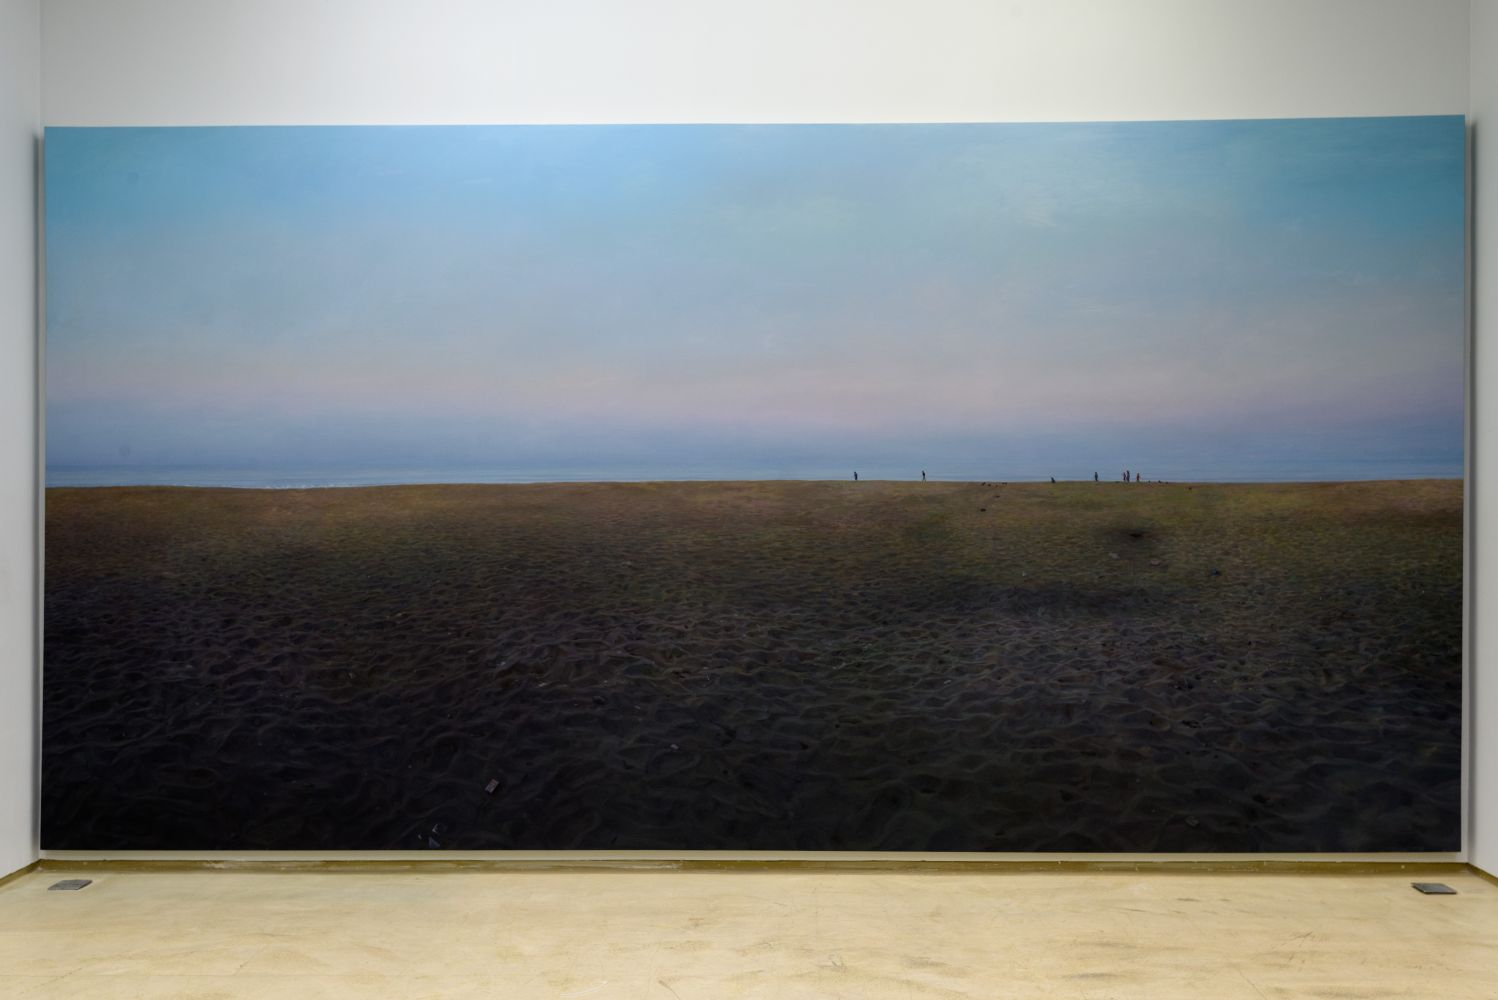 ABIR KARMAKAR Abandonment of all that is Rational : Daybreak, 2017  Oil on canvas, vast landscape, few people in a distance, blue sky with pinkish hue